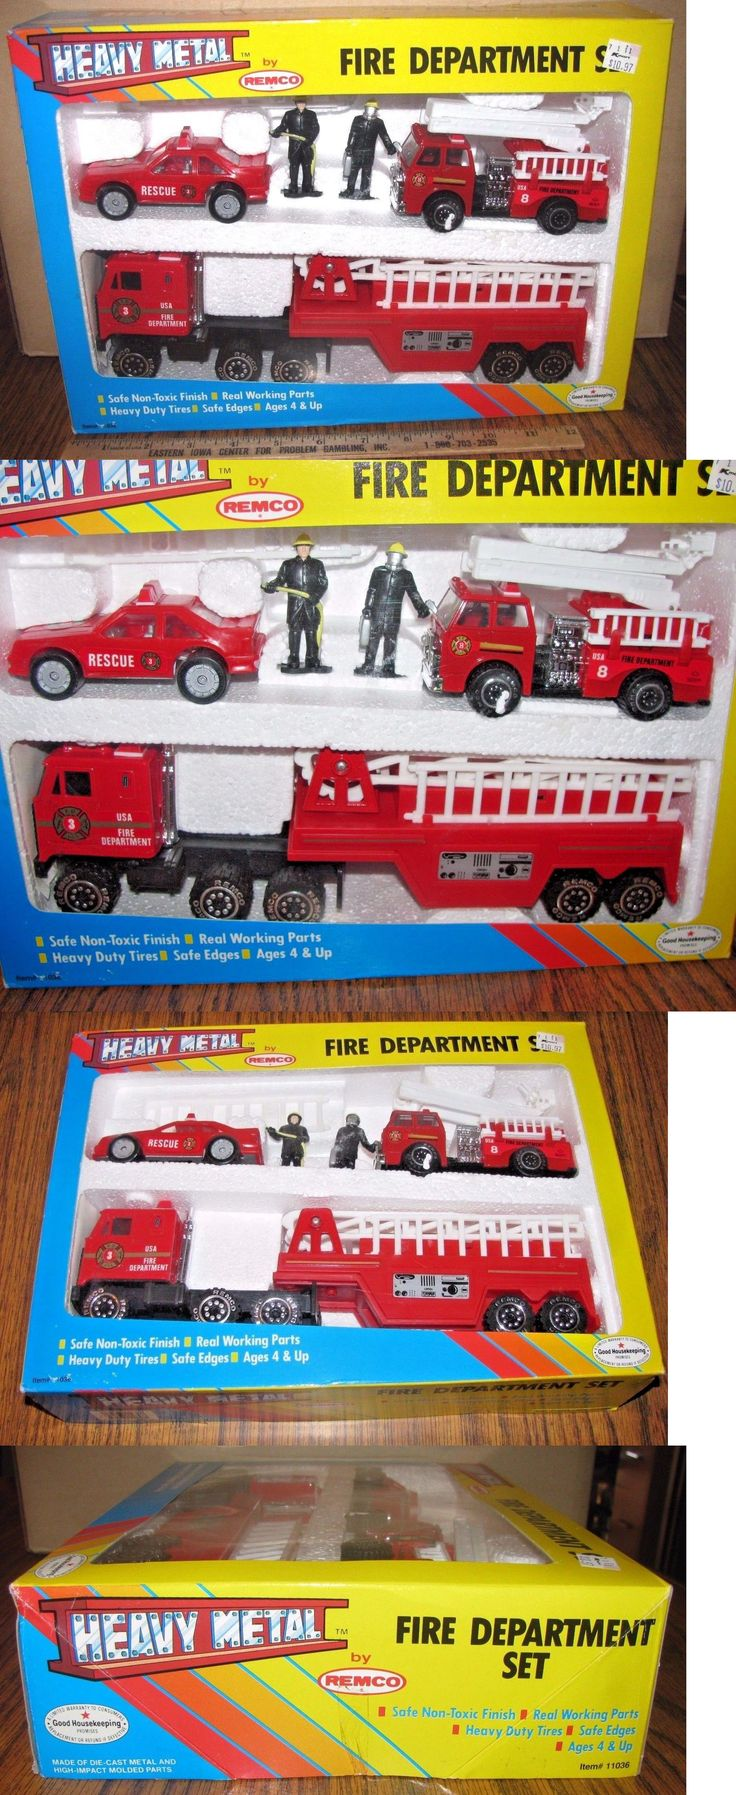 Play Sets 177918: Remco Fire Department Truck Car Firemen Toy Set Die Cast Metal 1990 New And Sealed -> BUY IT NOW ONLY: $47.49 on eBay!